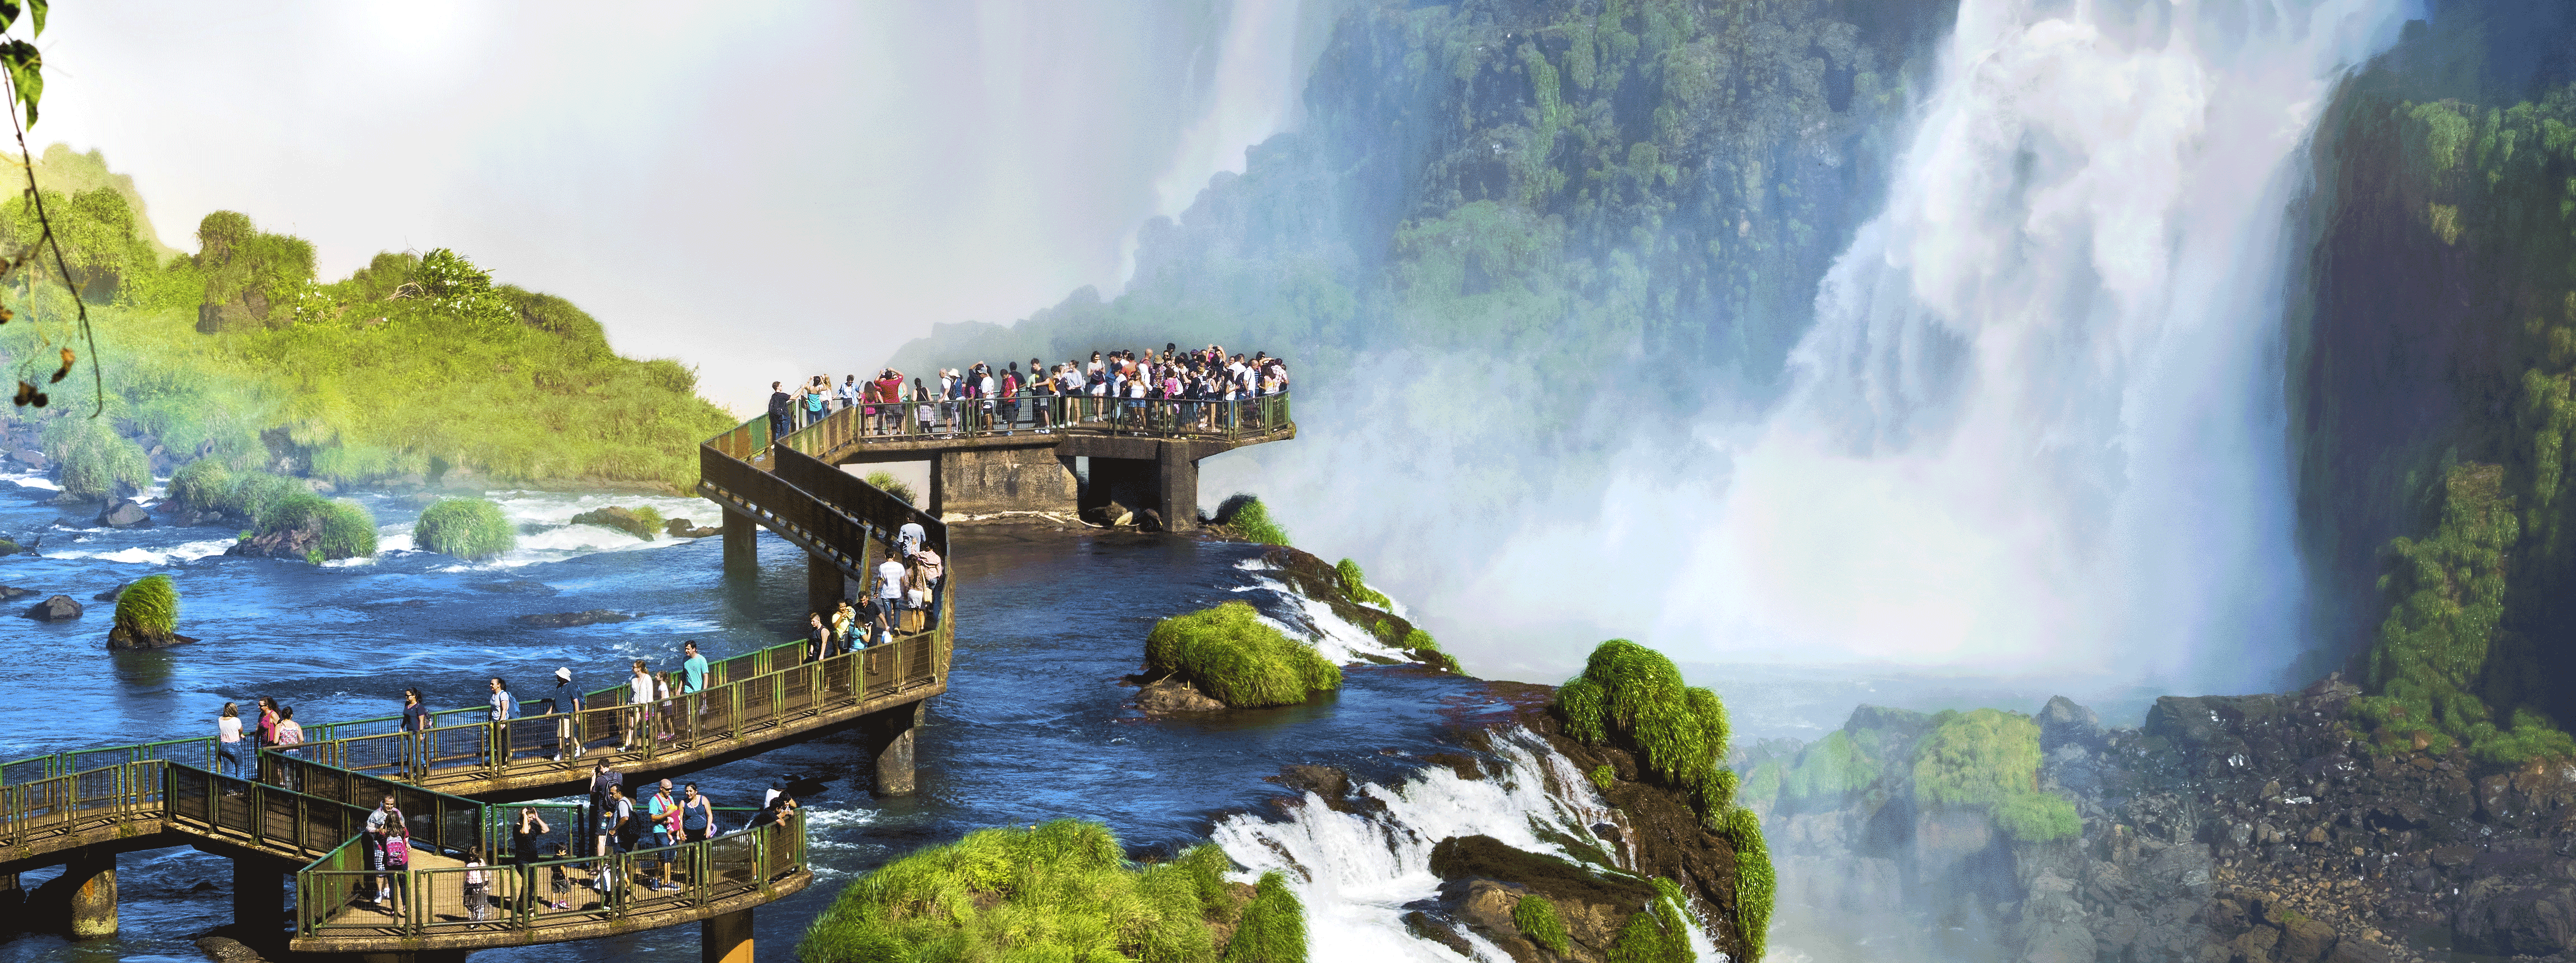 /resource/Images/southamerica/brazil/headerimage/iguazu-falls-brazil.png